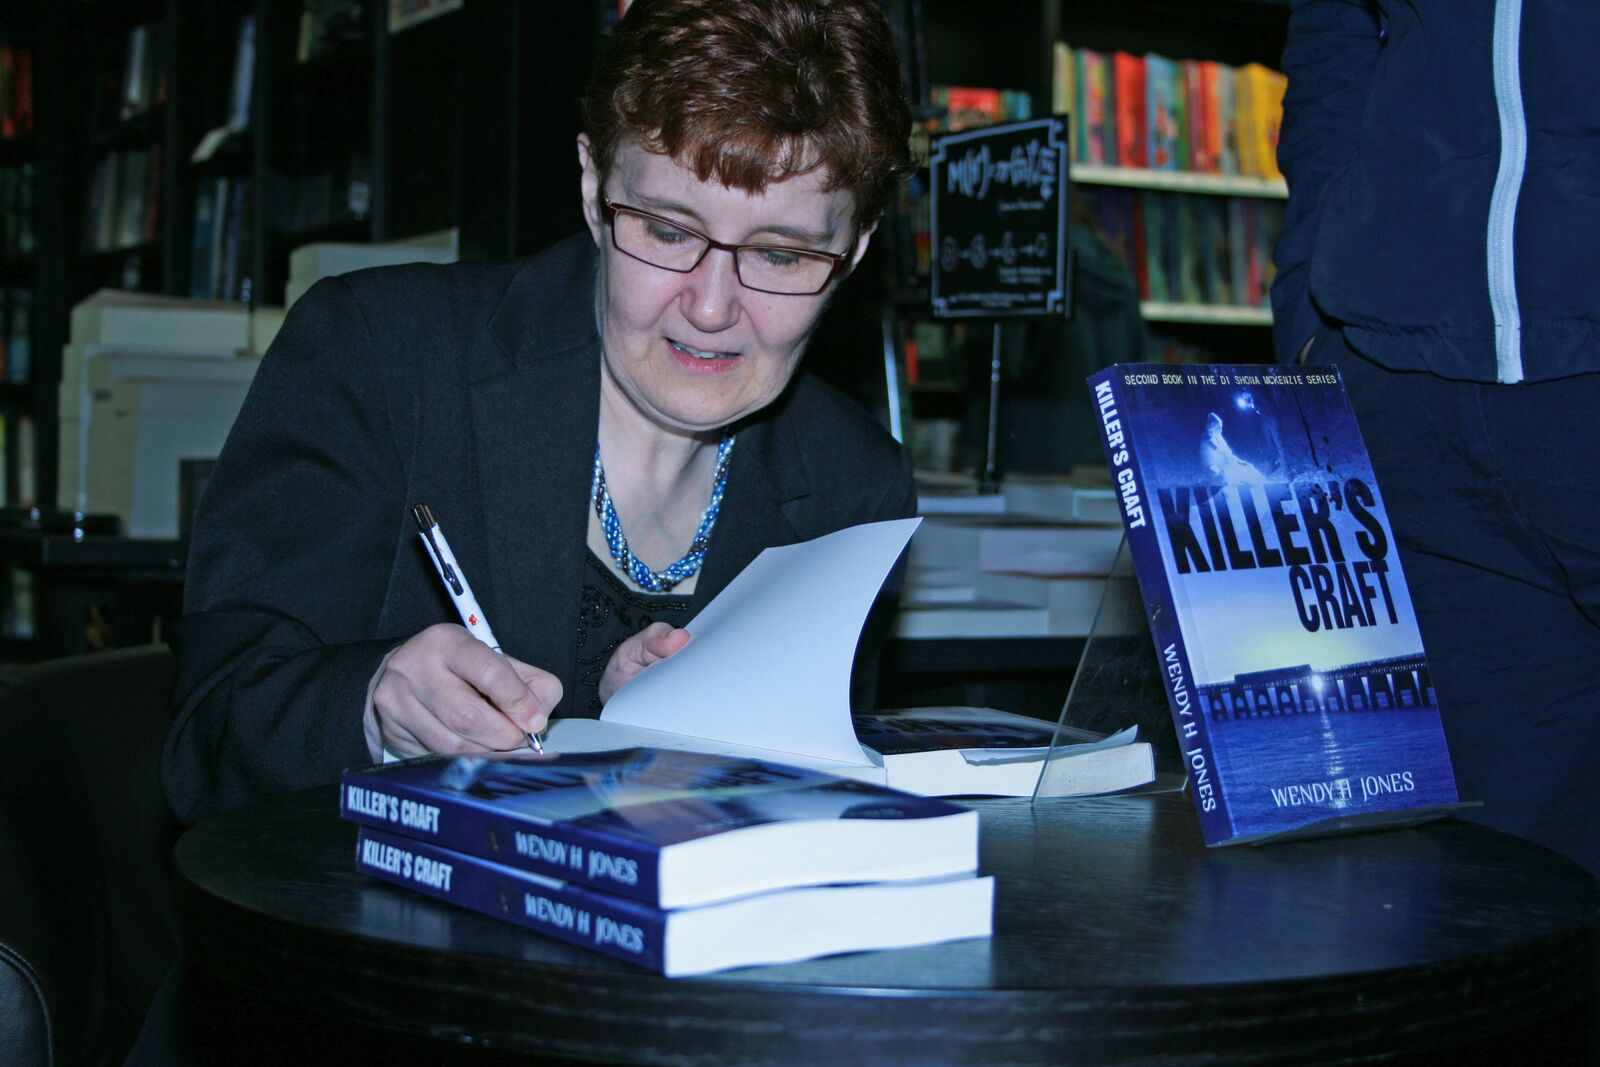 Photo Of Wendy H Jones Signing Books